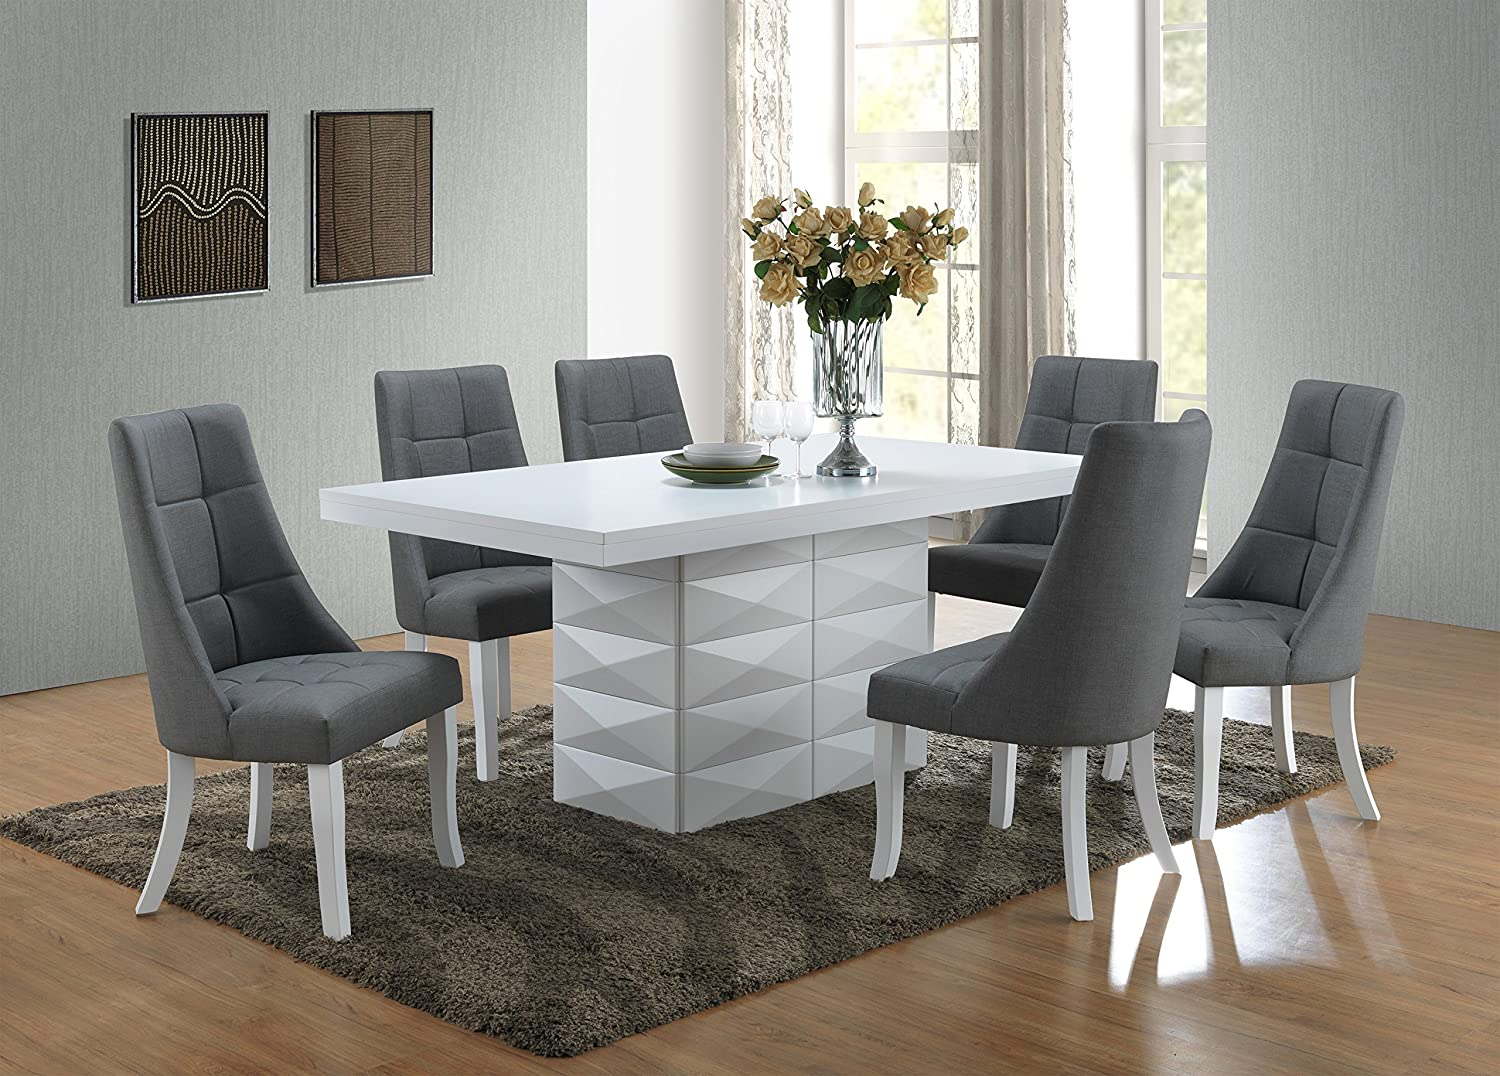 Kings Brand Furniture - Milan 7 Piece White Modern Rectangle Dinette Dining  Room Table & 6 Grey Vinyl Chairs